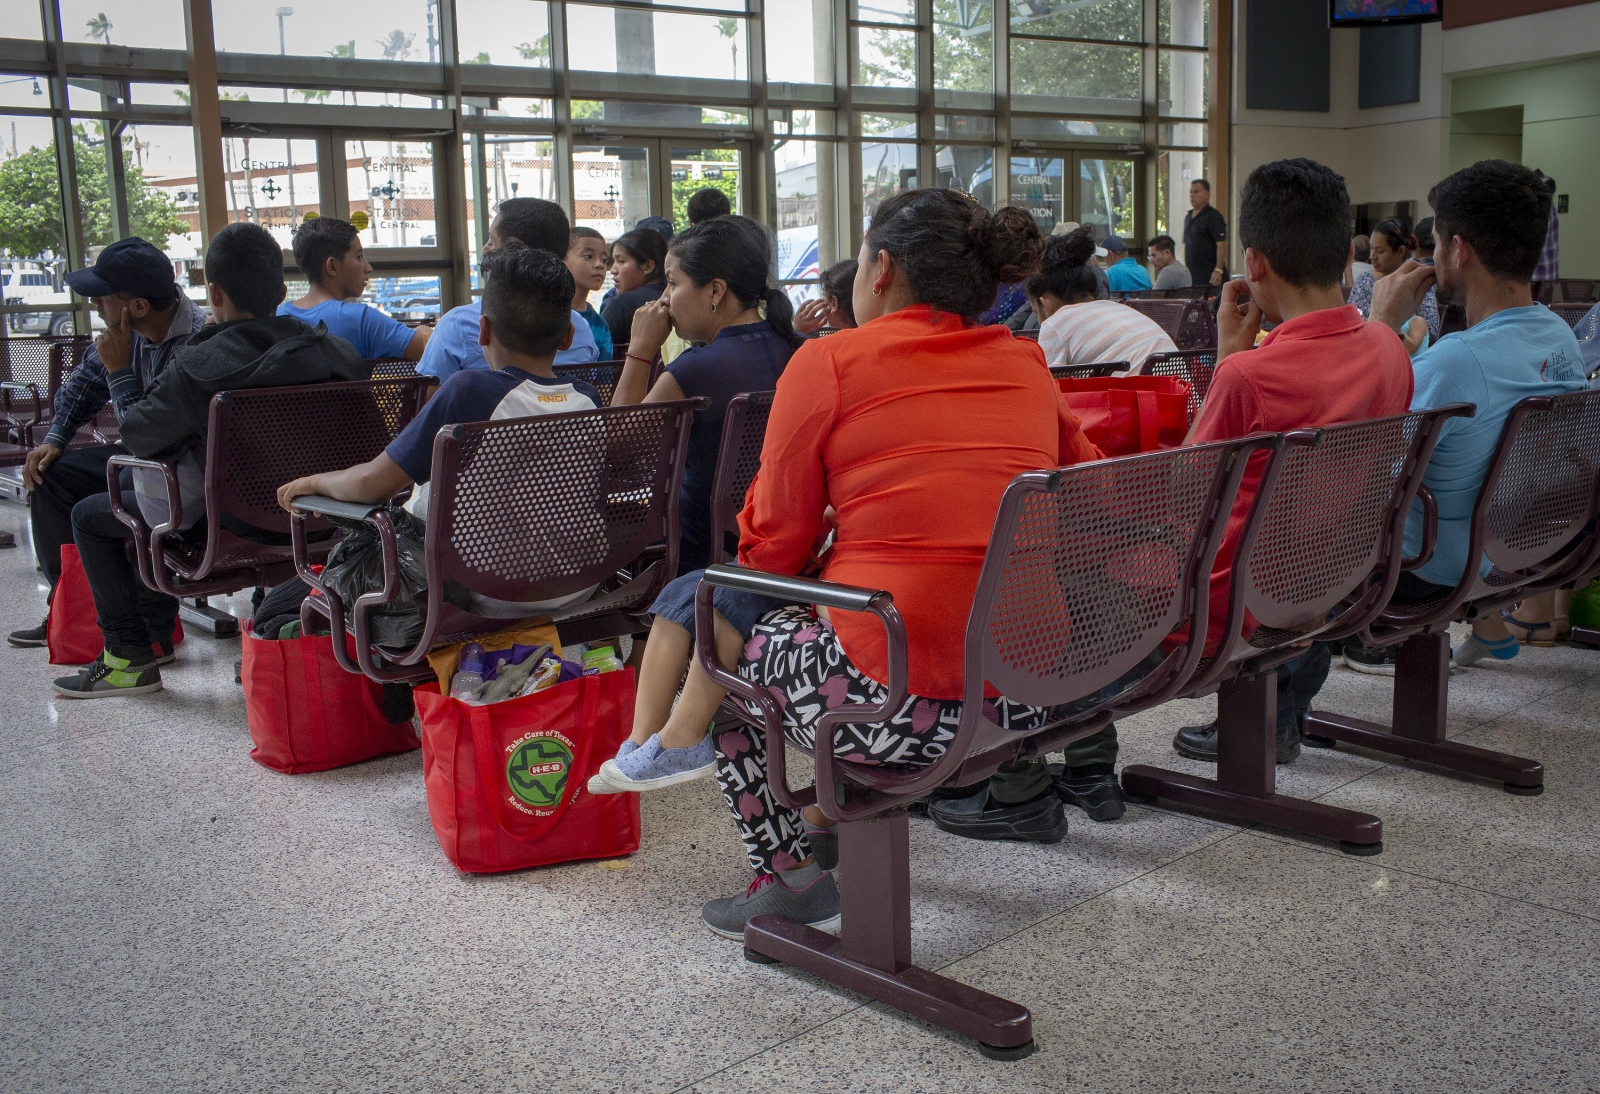 Migrants who were released from detention and were given comfort and aid by Catholic Charities and given help to find their families throughout the United States are also given bus tickets that will take them across the country to be reunited with their families who are already in the U.S.( Kevin C Downs/Agence Cosmos)